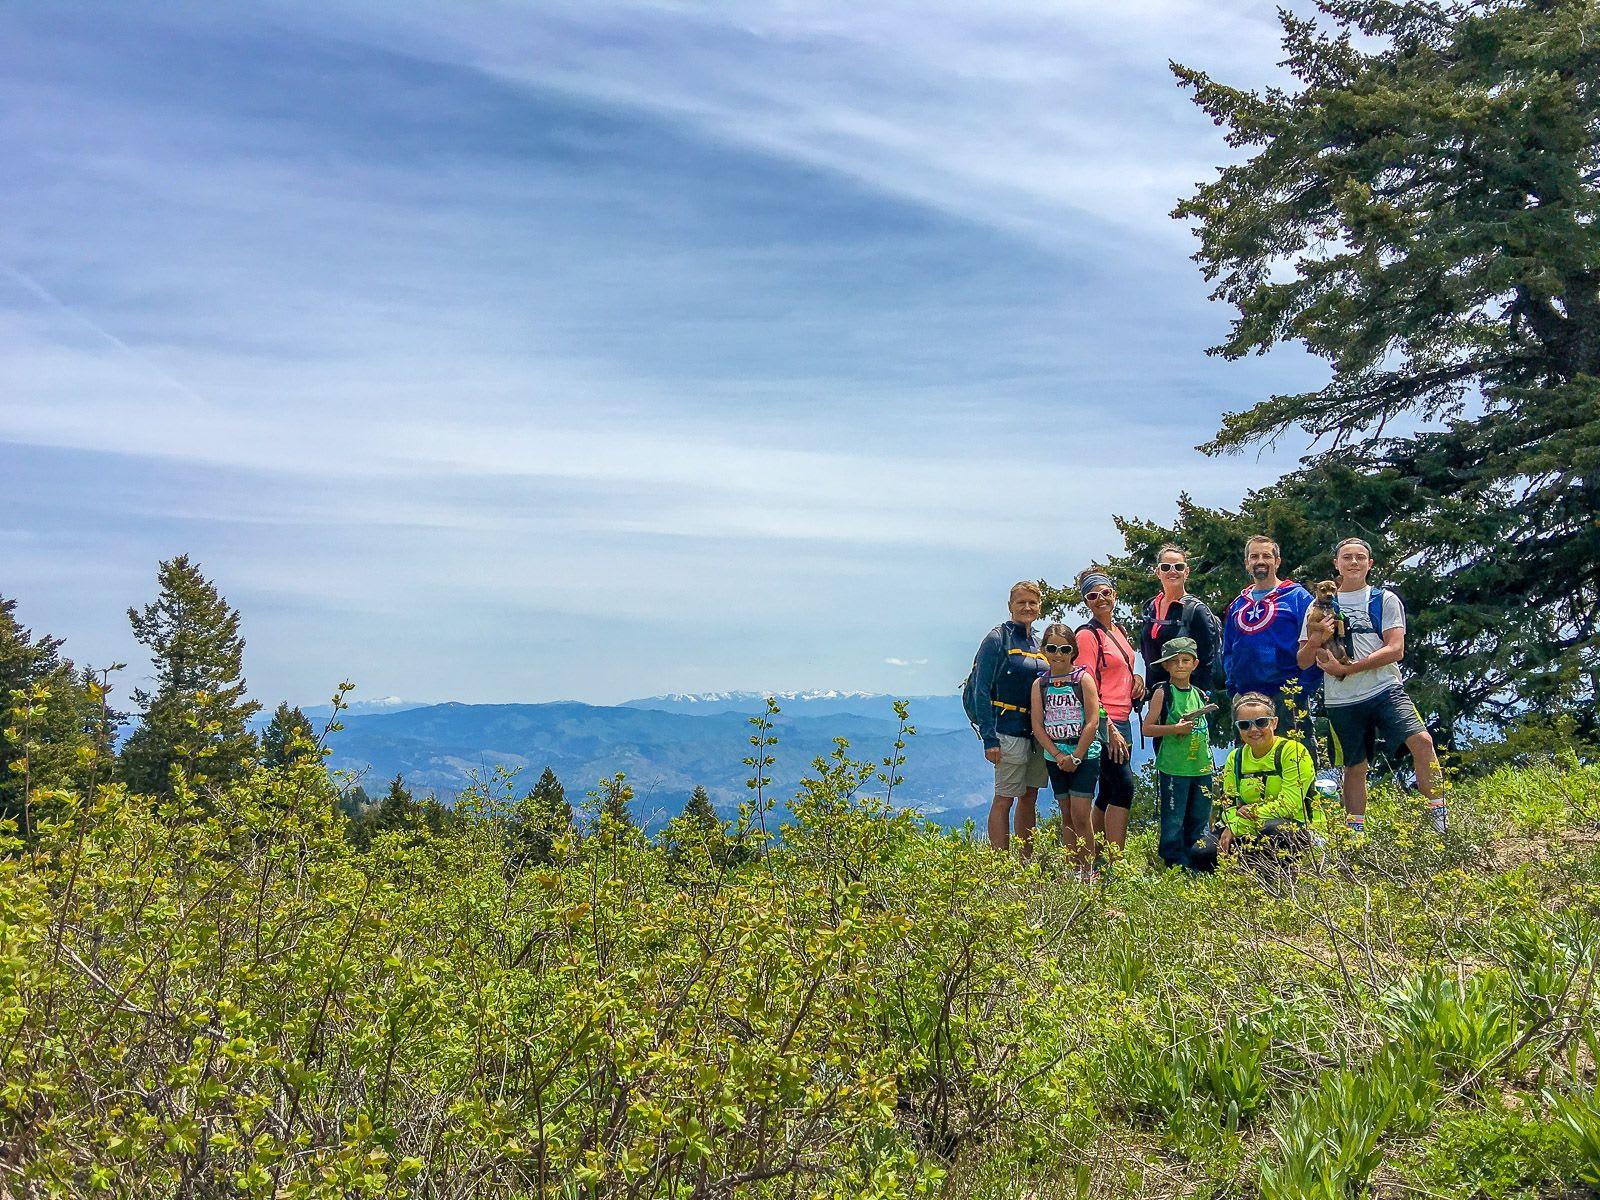 Bogus Basin Hike on Memorial Day